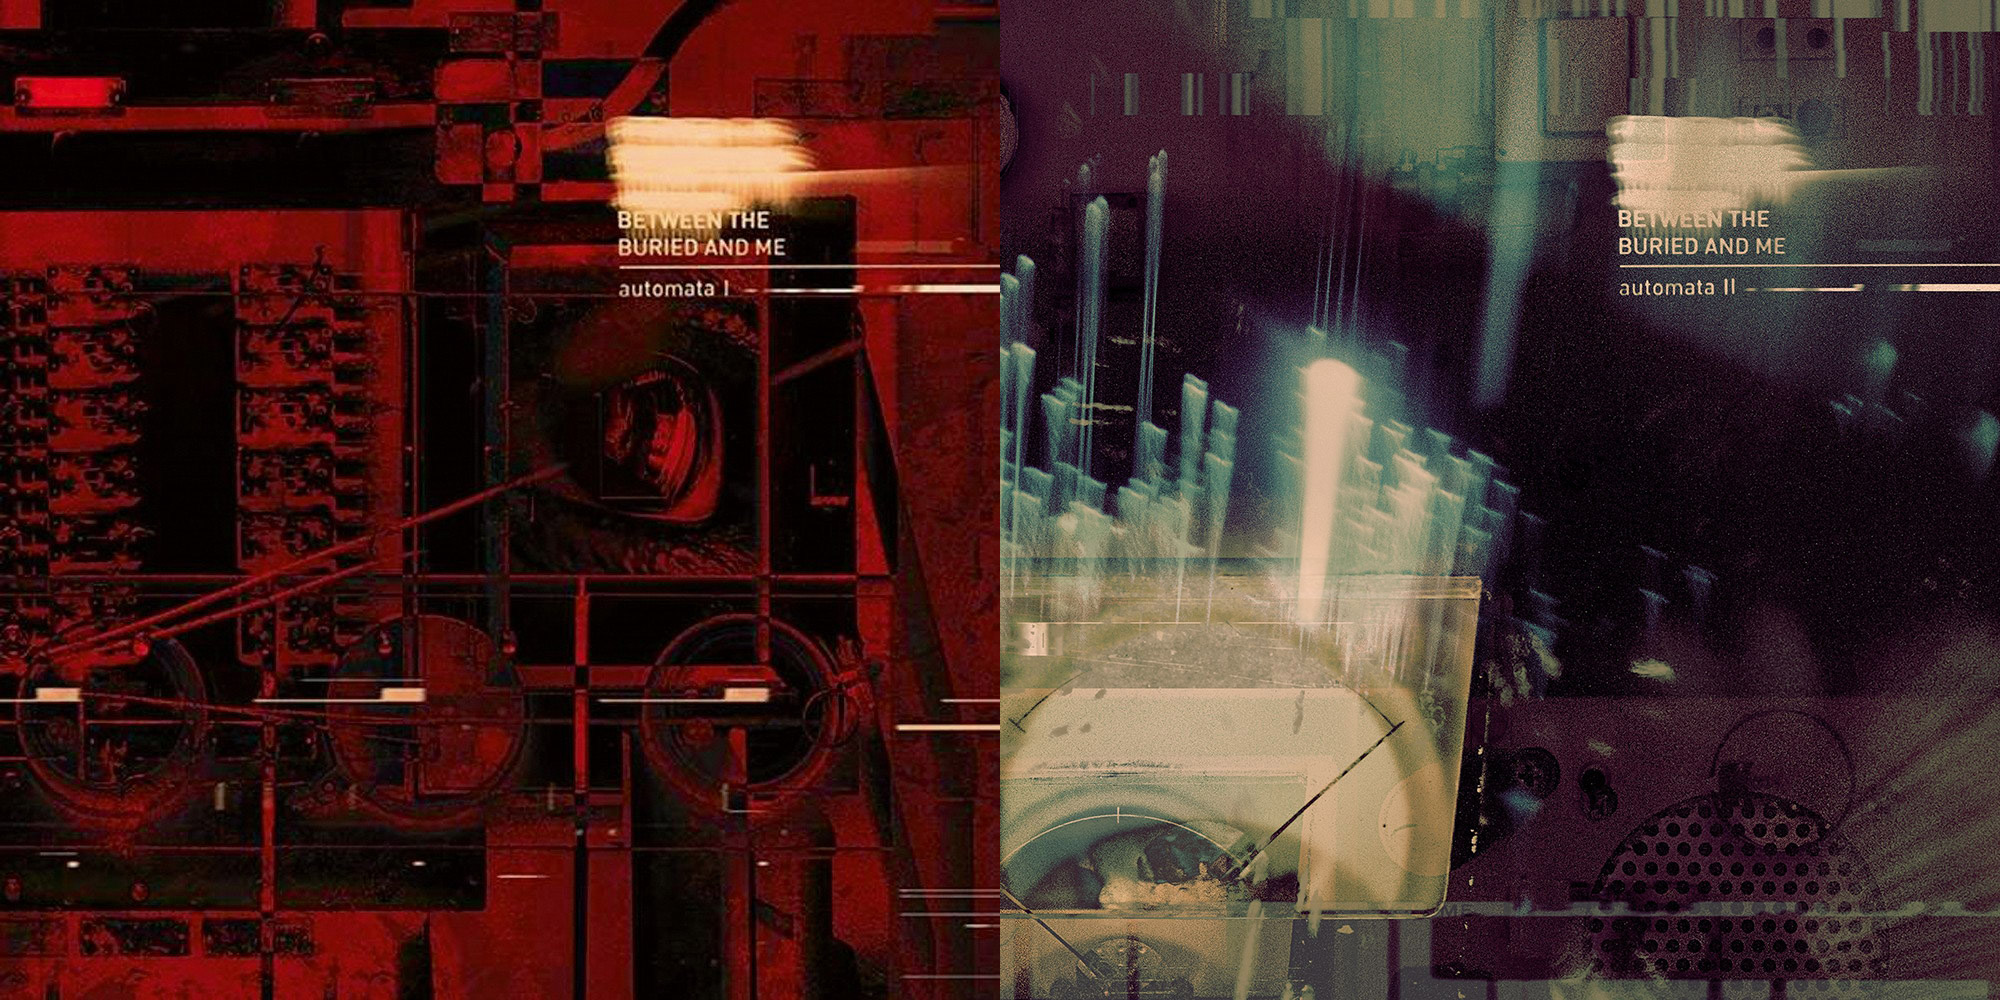 Between the Buried and Me: Automata I+II